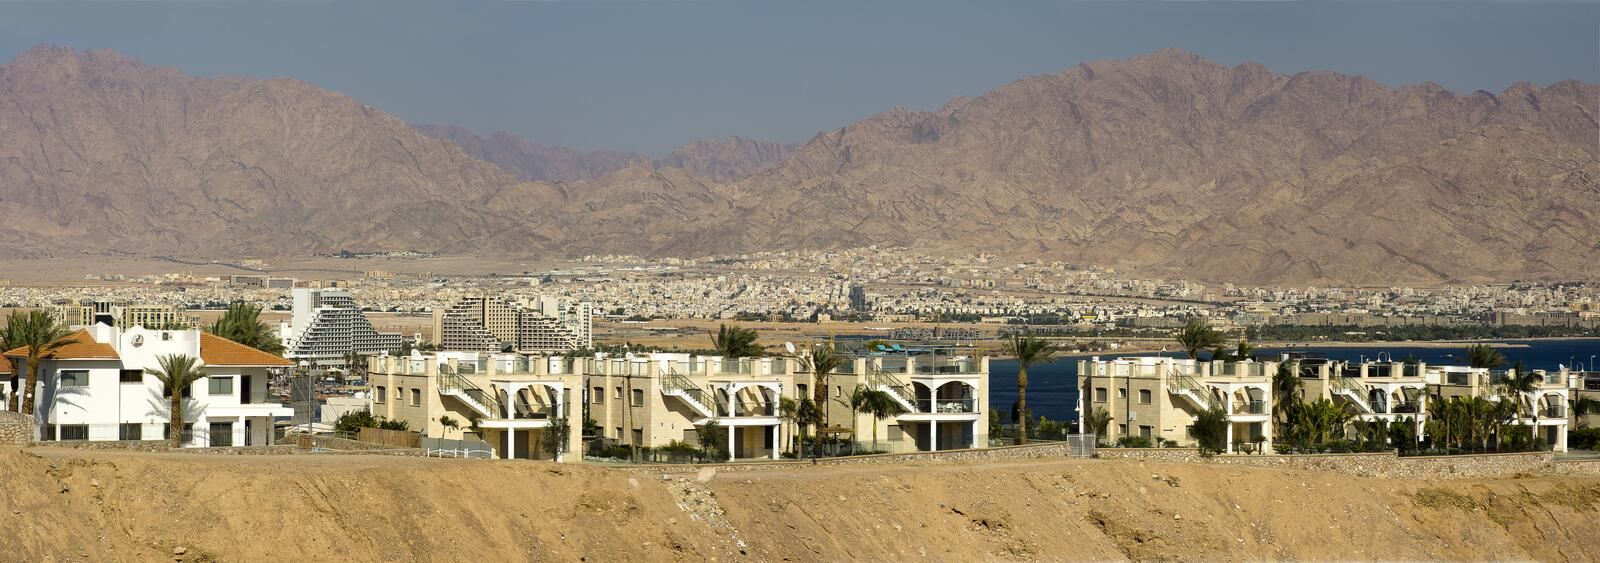 Eilat. Panorama of houses in Eilat and Aqaba in the background stock photo